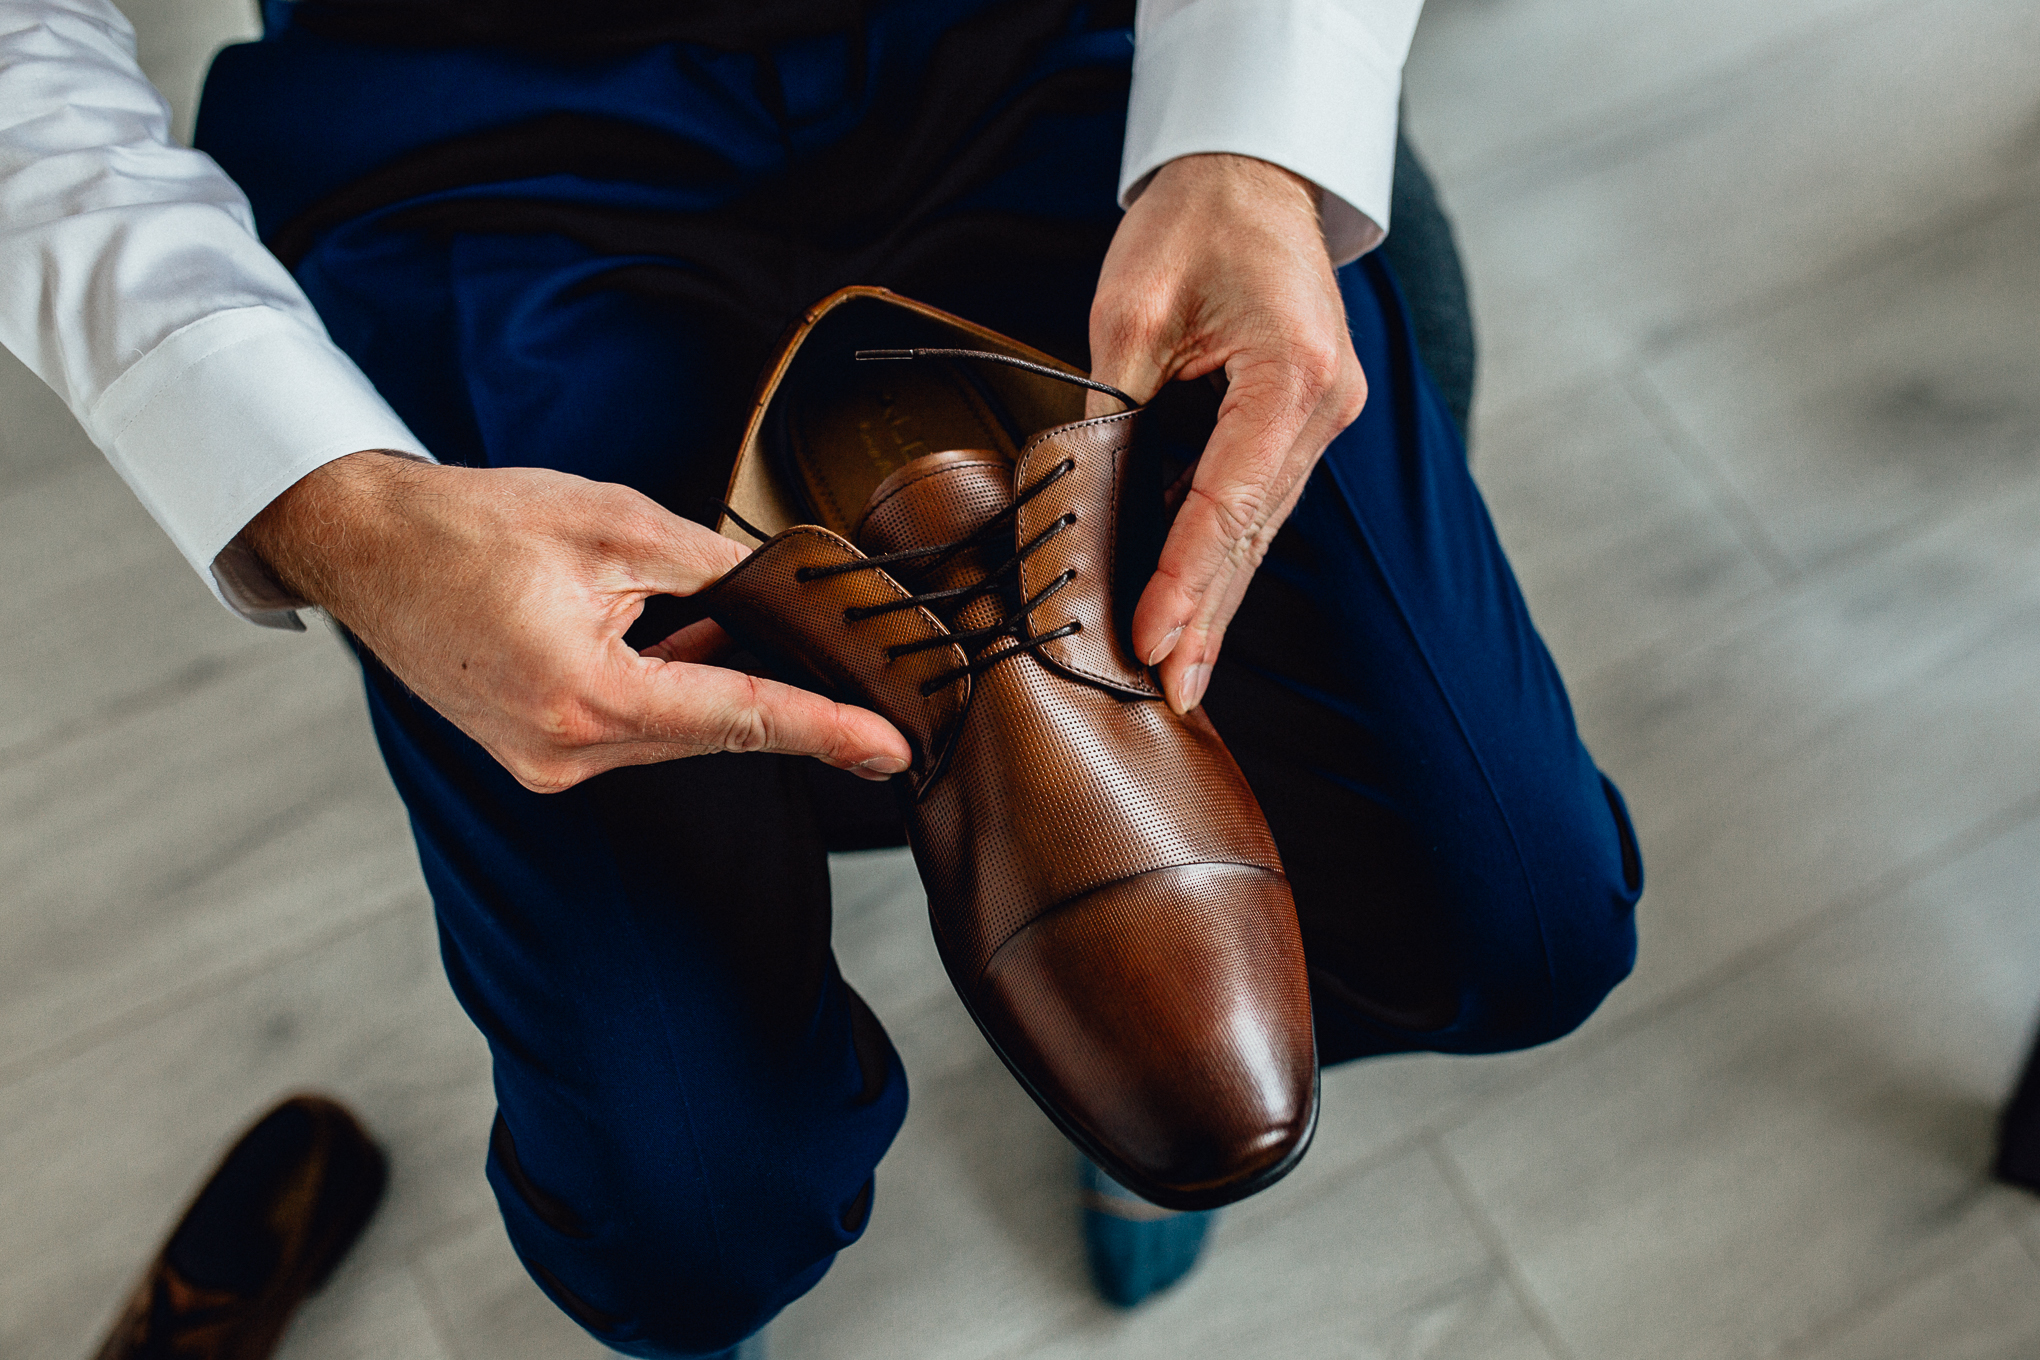 Groom-getting-ready-putting-on-shoes.jpg